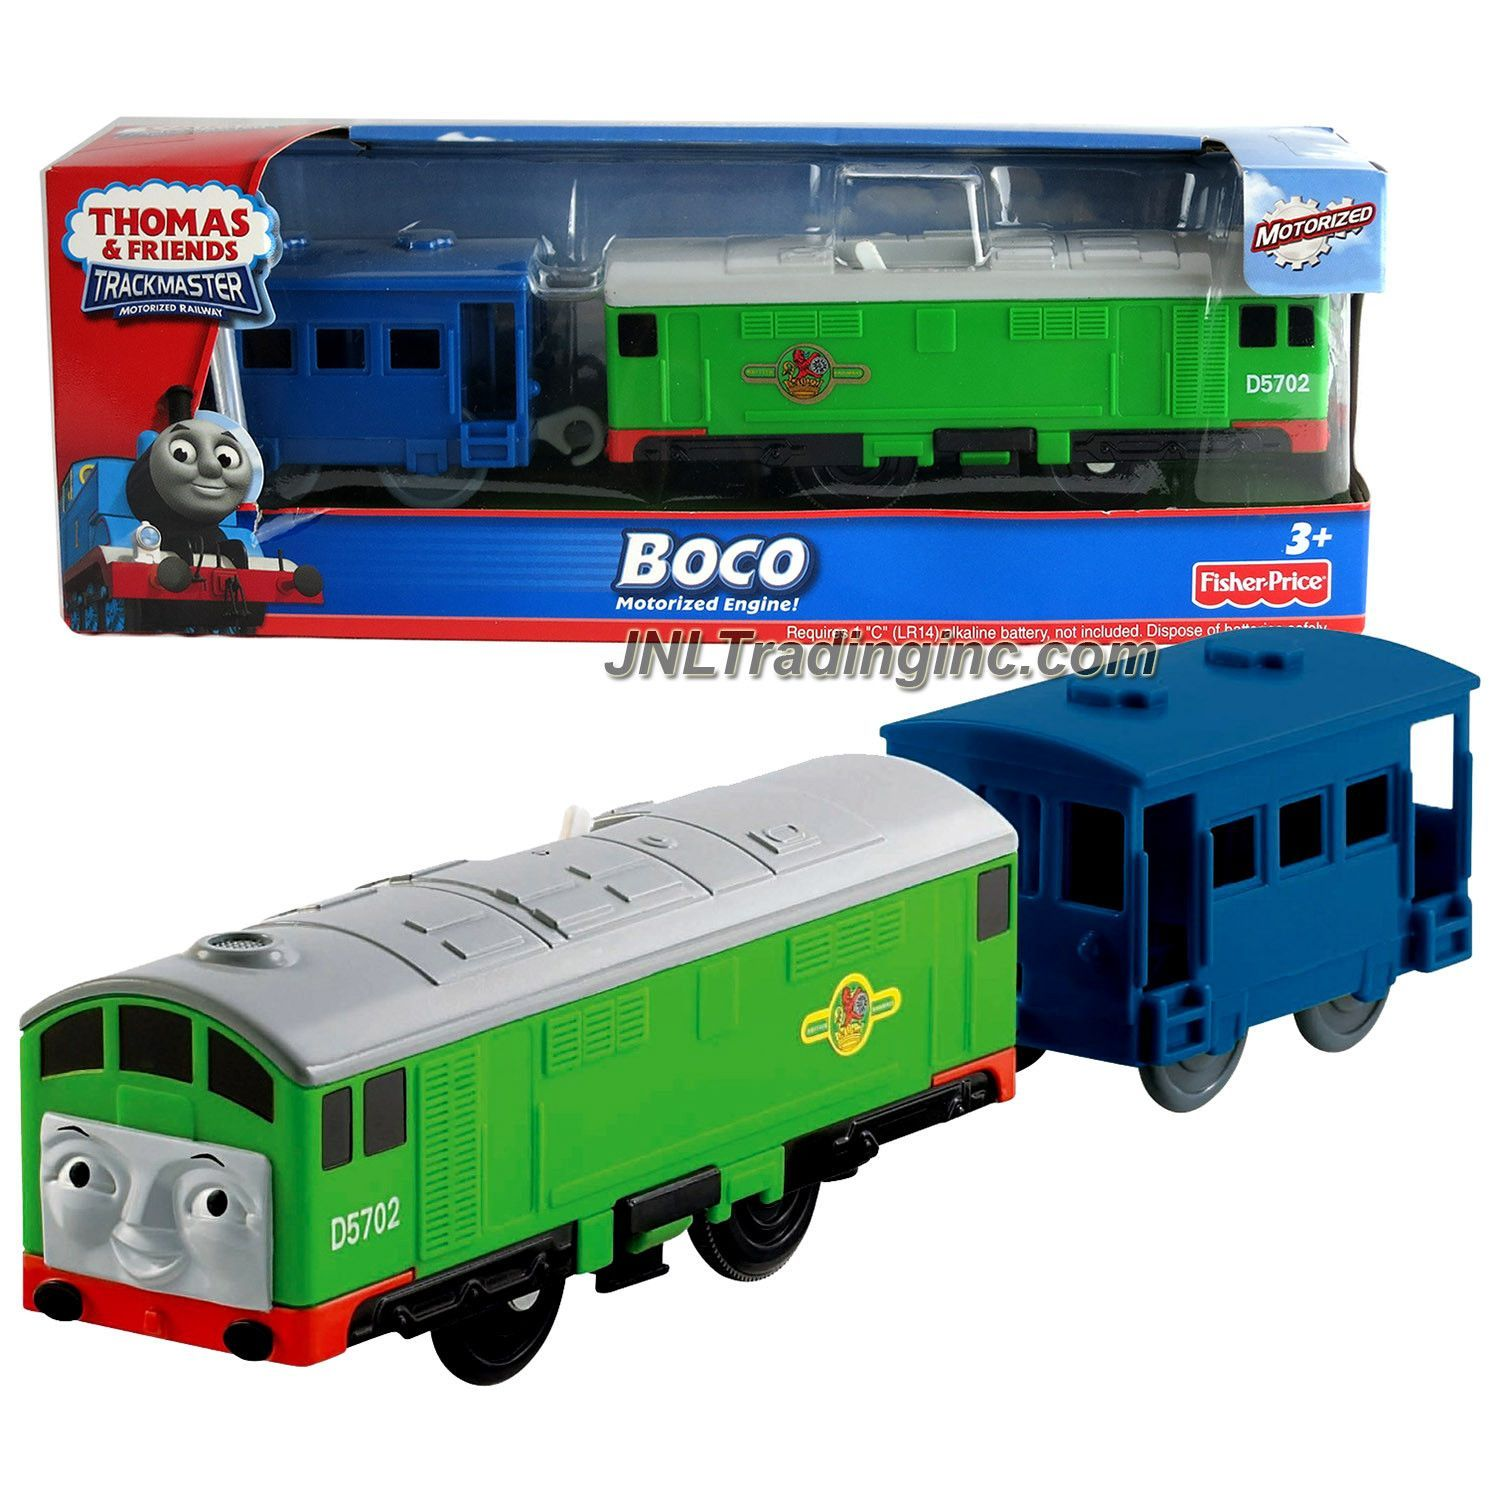 Thomas and friends trackmaster motorized railway 2 pack for Thomas friends trackmaster motorized railway